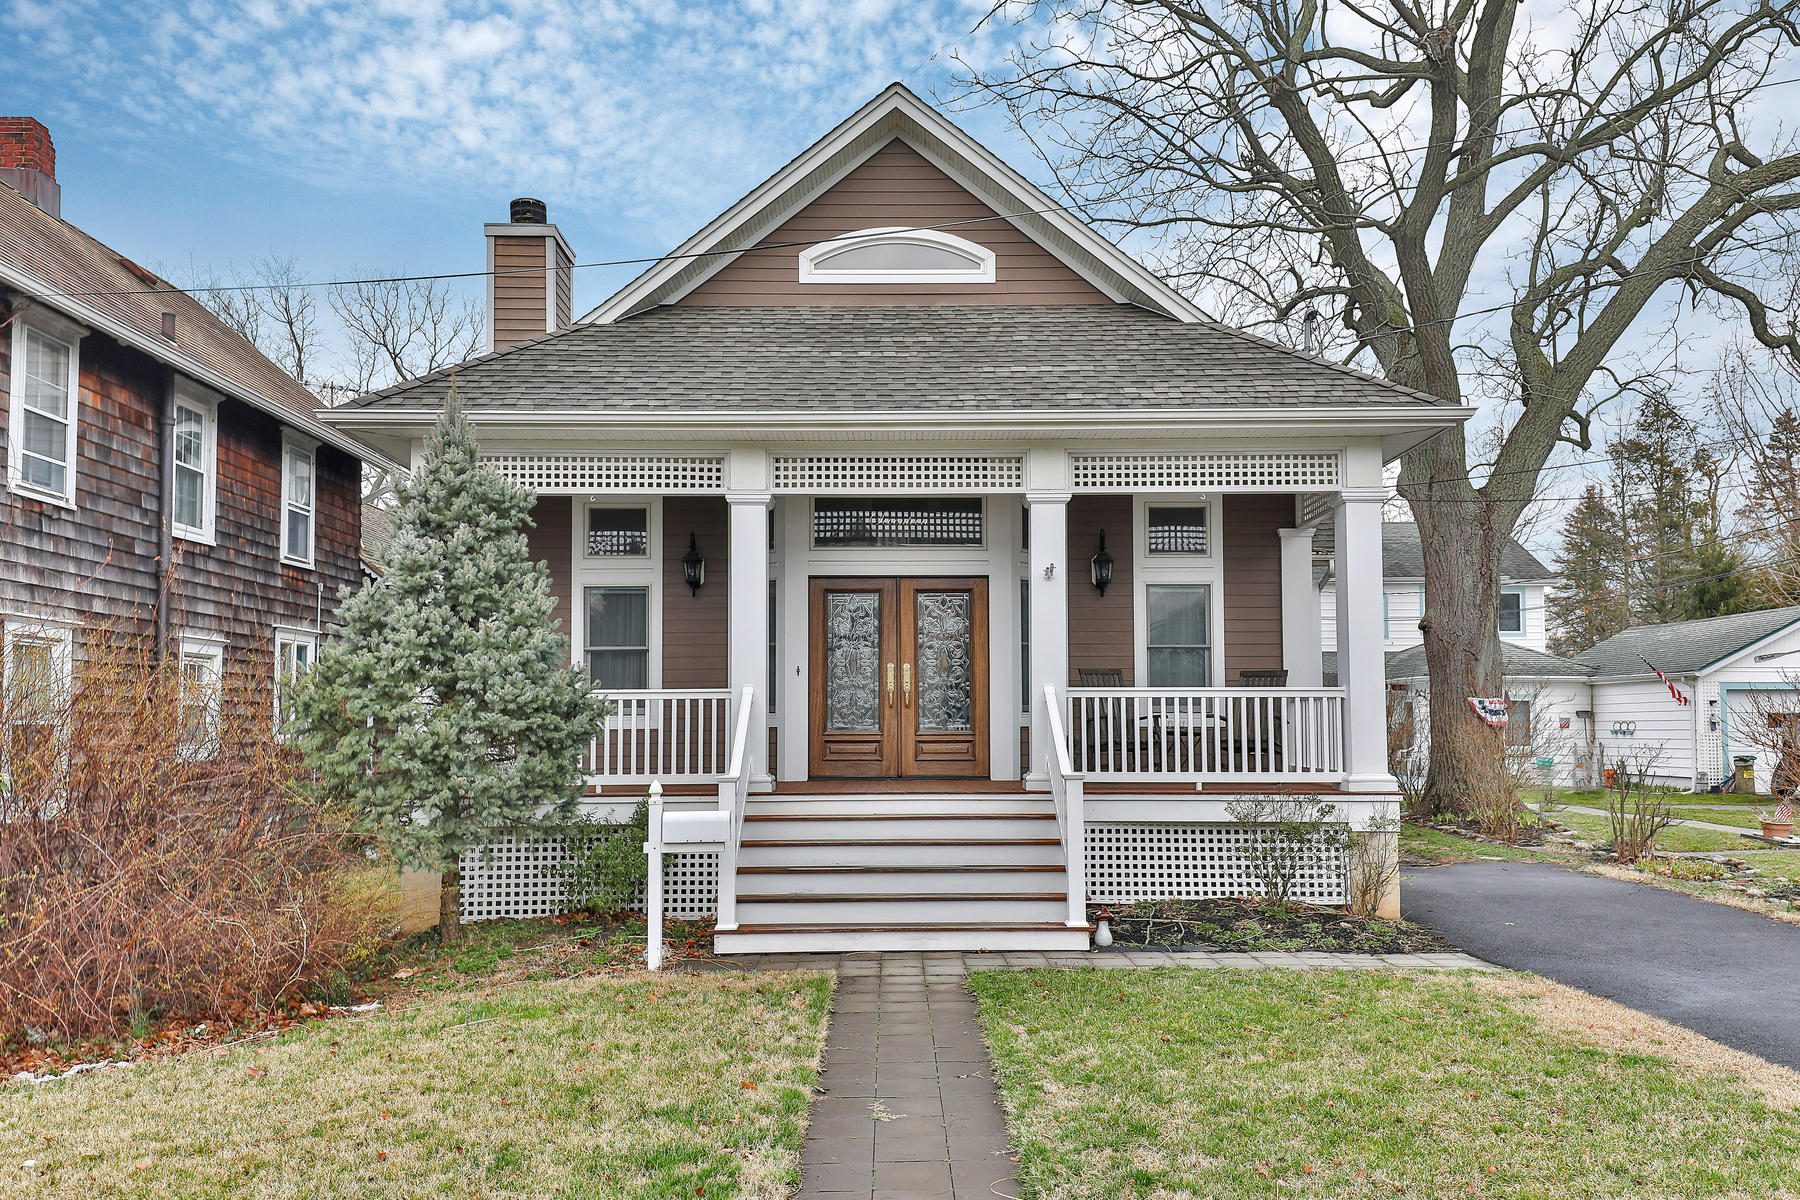 Single Family Home for Sale at Charming Custom Home! 17 Central Avenue Manasquan, New Jersey 08736 United States